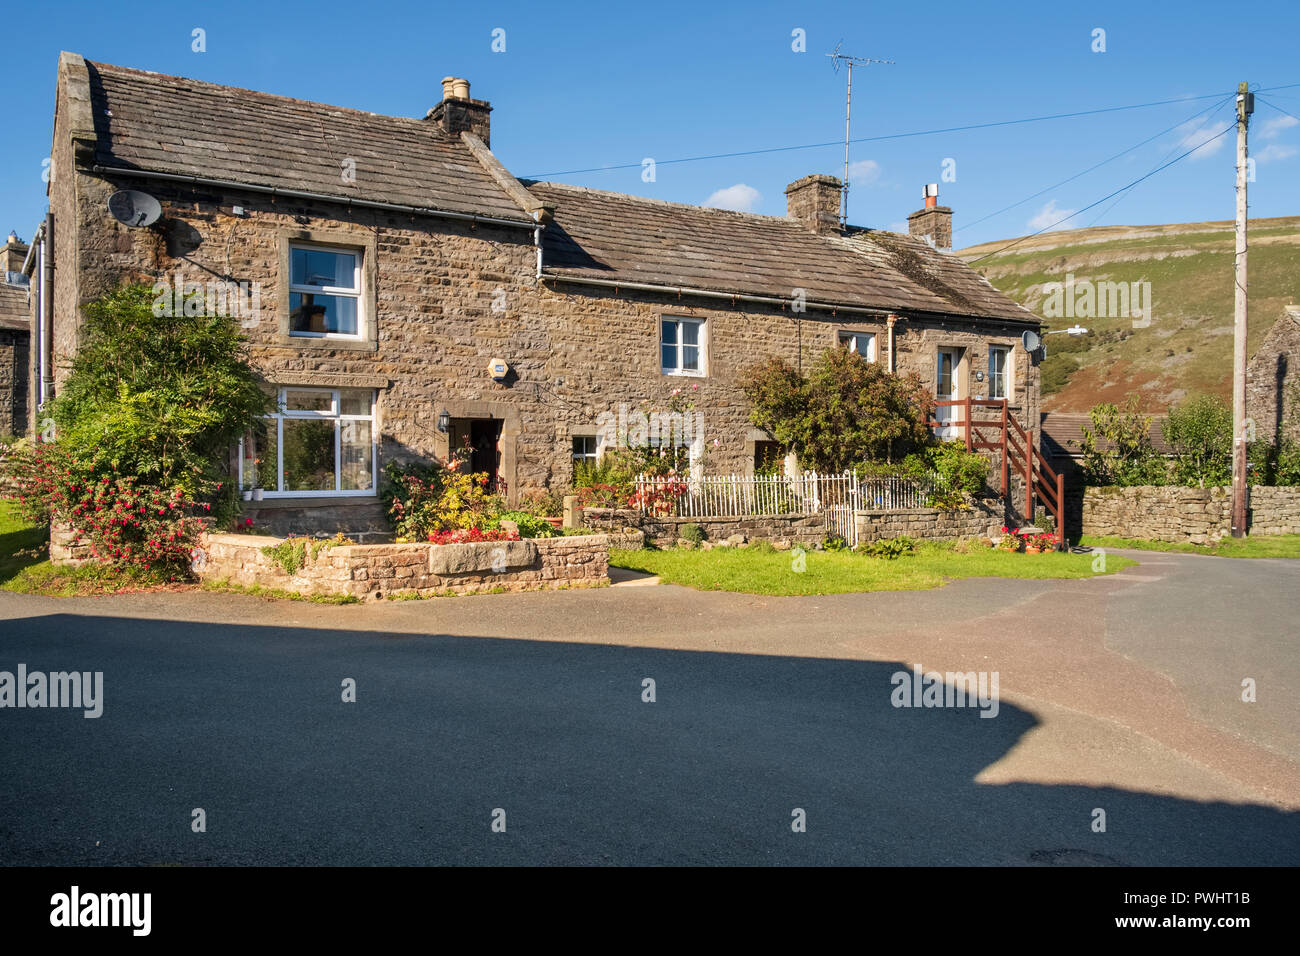 Stone cottages in Muker village in the Yorkshire Dales, North Yorkshire - Stock Image